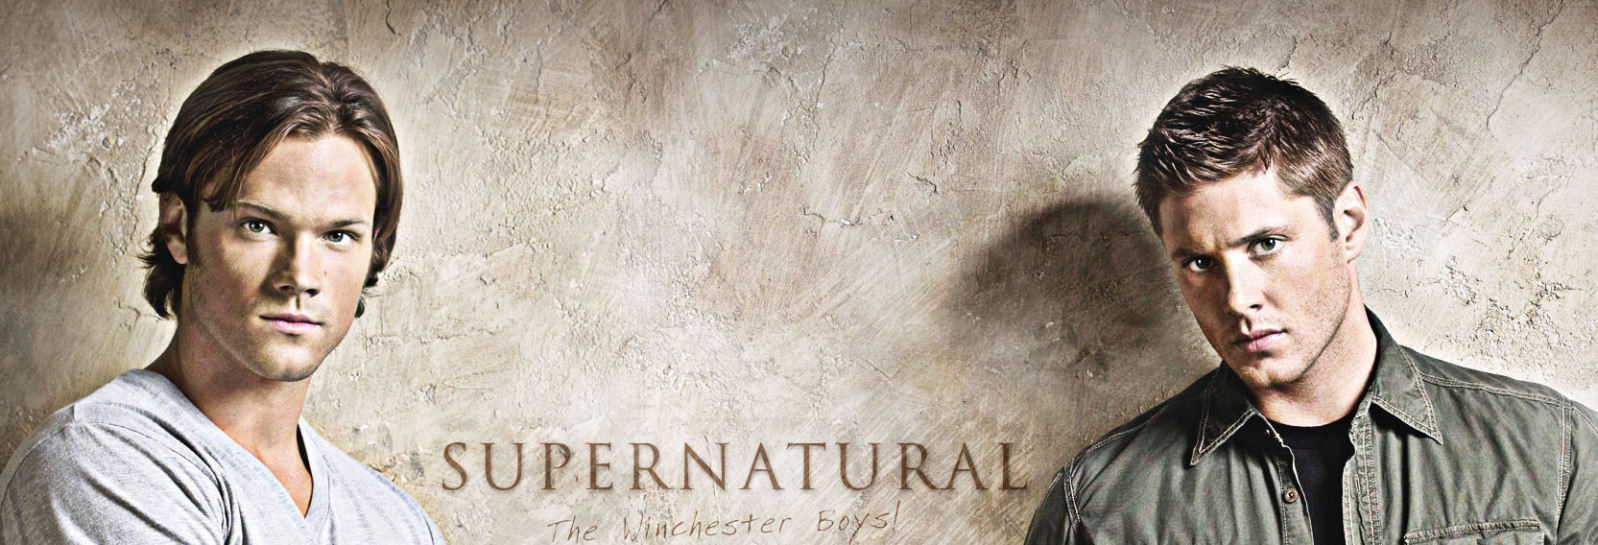 Supernatural S09E10 - 9x10 Legendado